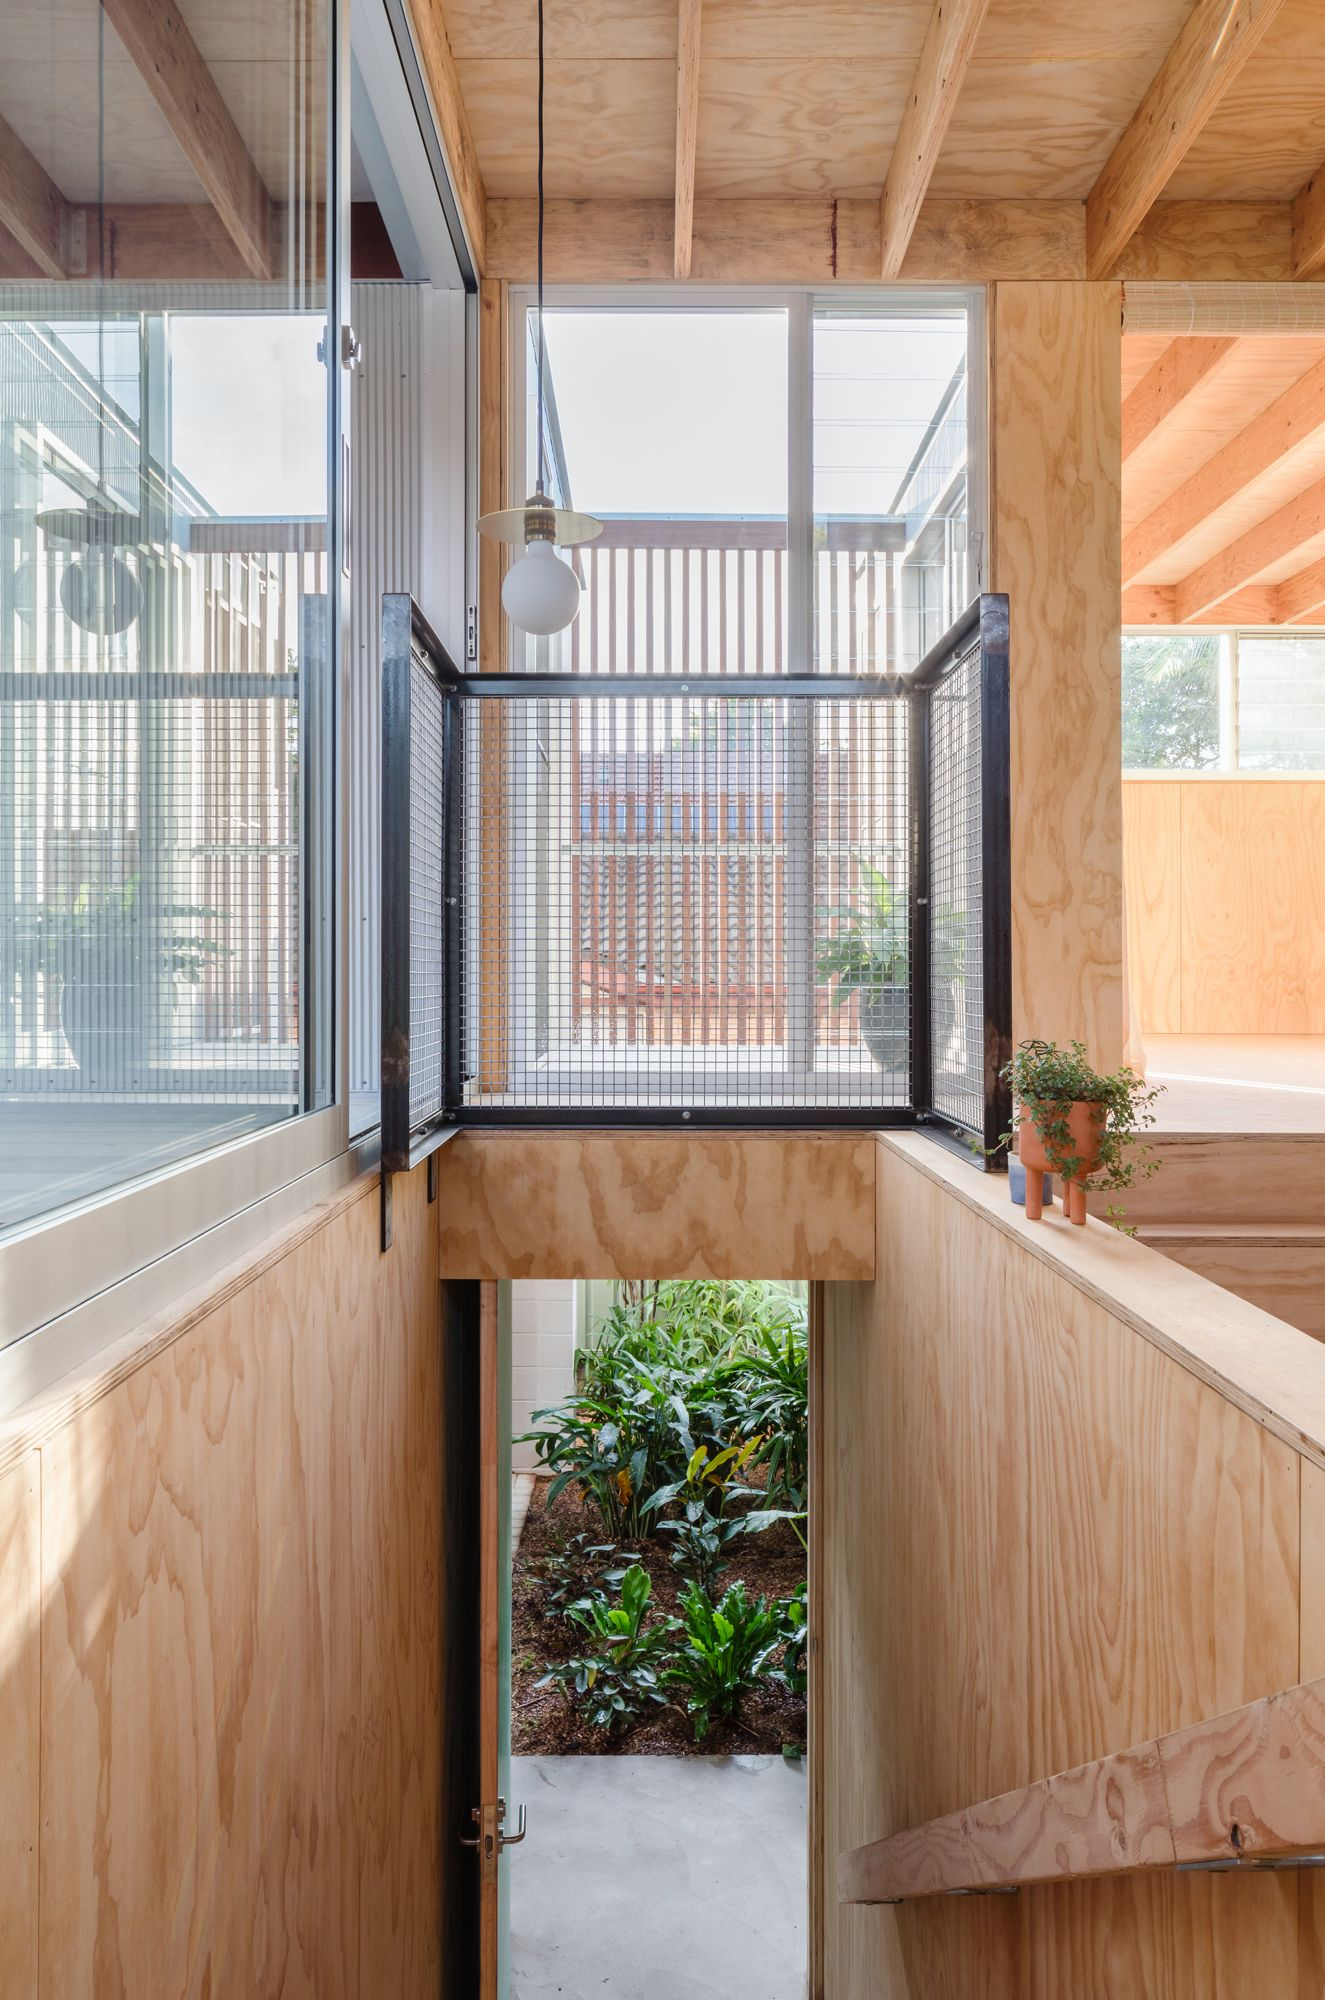 Fleming Street House By Curious Practice Project Feature Newcastle Nsw Australia 11 21 2019 In 2020 Street House House Window Design